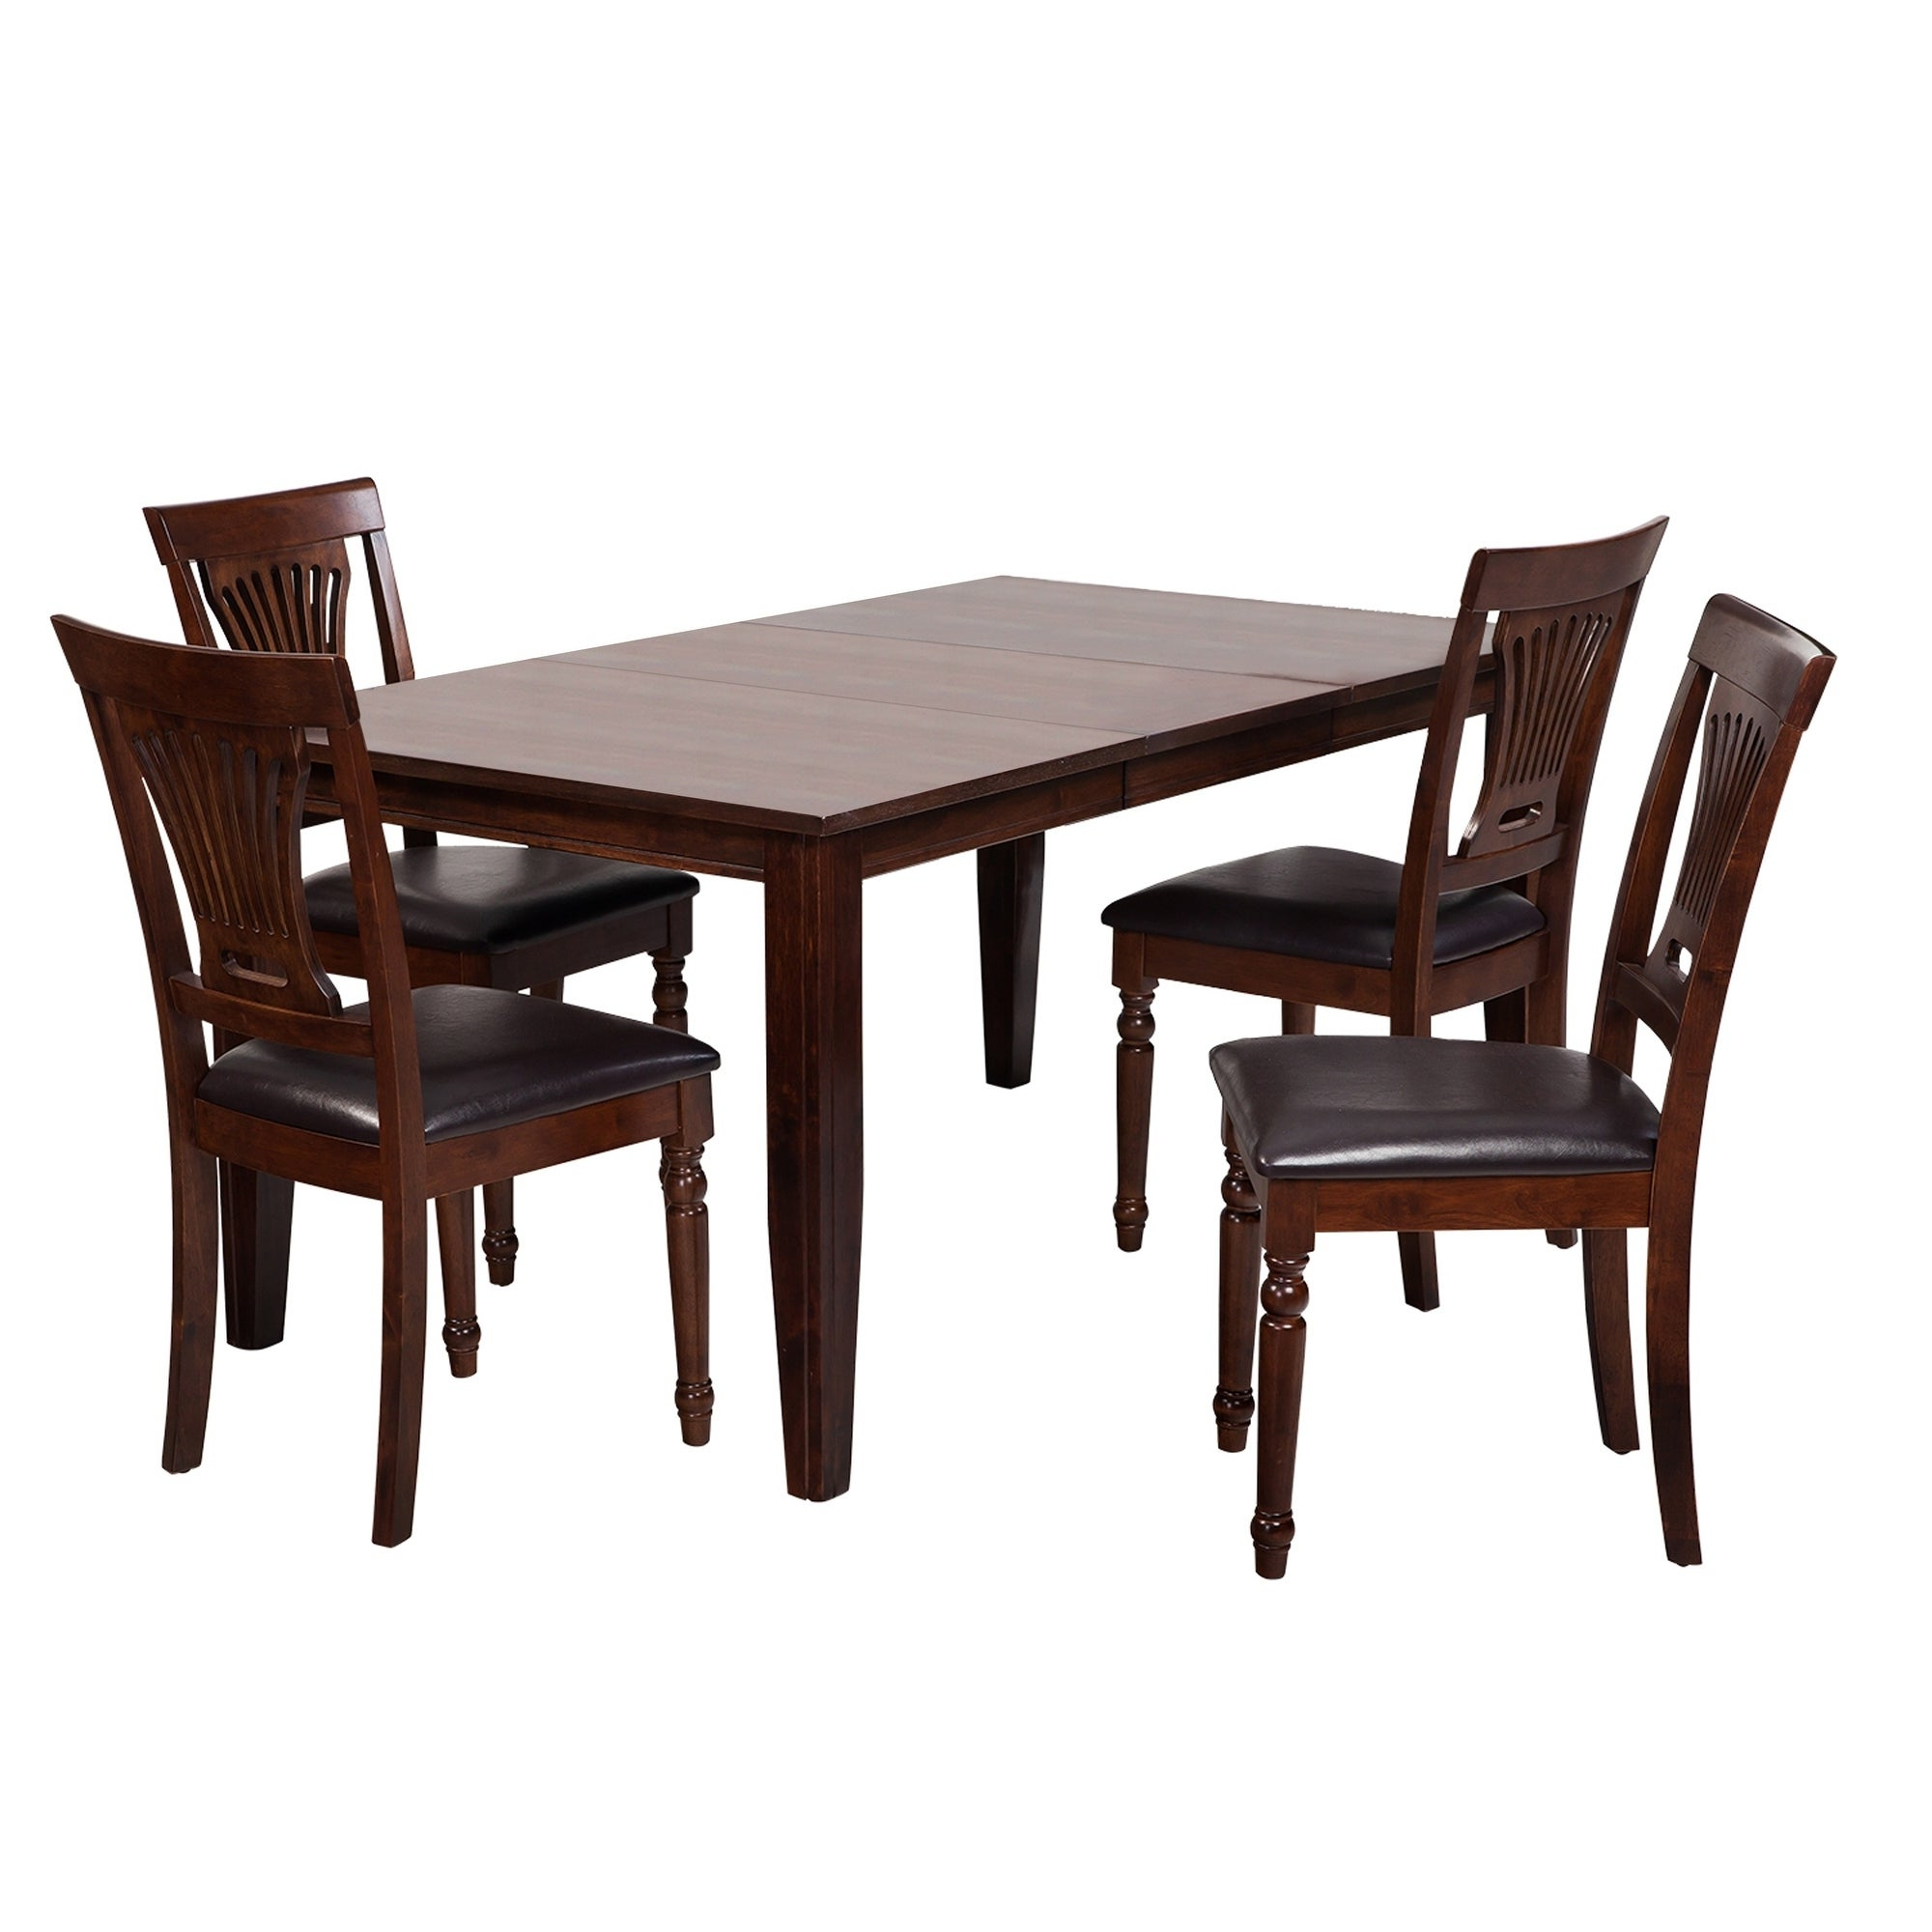 "5 Piece Solid Wood Dining Set ""aden"", Modern Kitchen Table Set, Espresso Regarding Preferred Adan 5 Piece Solid Wood Dining Sets (Set Of 5) (Gallery 1 of 20)"